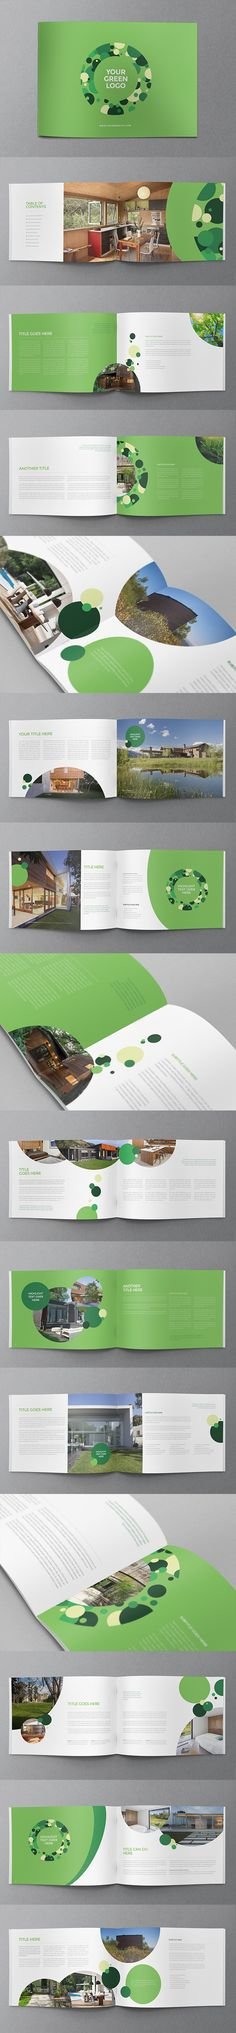 Green Modern Ecologic Brochure. Download here: http://graphicriver.net/item/green-modern-ecologic-brochure/11932612?ref=abradesign #brochure #ecologic #design